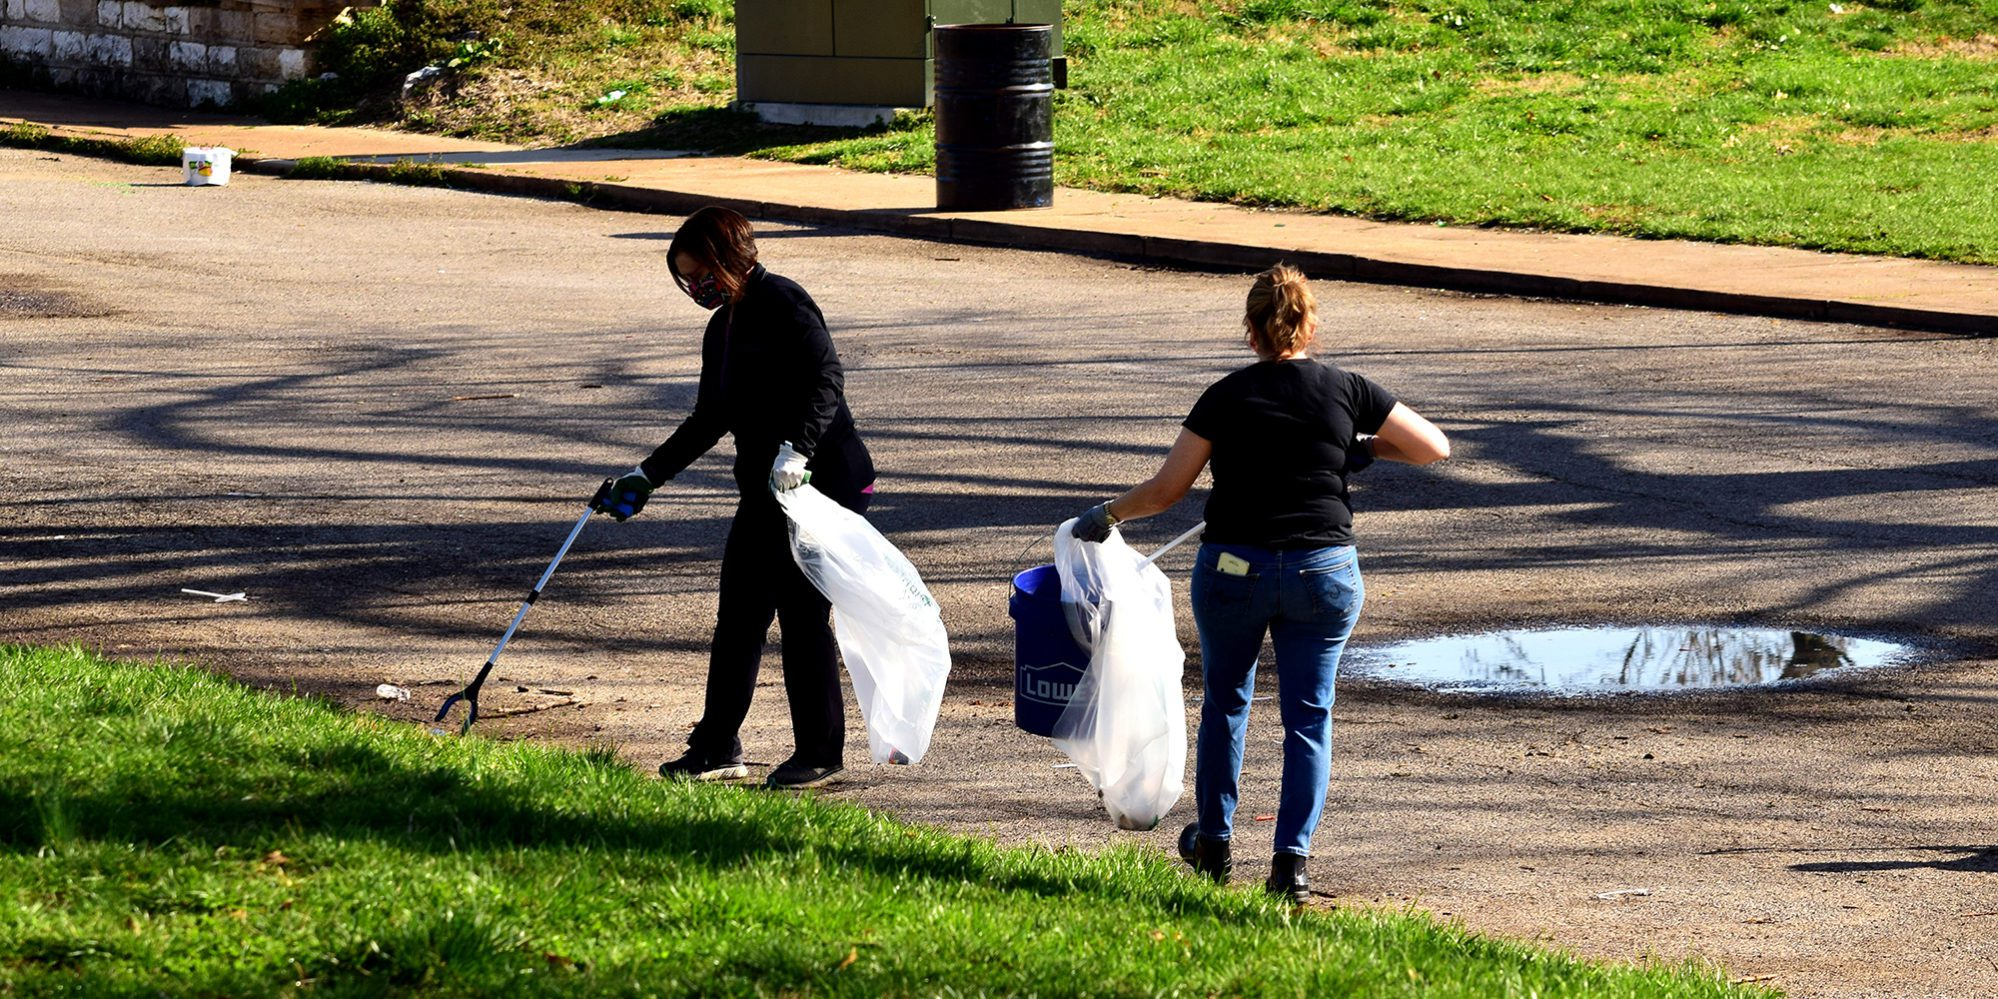 Neighbors cleaning up Marquette Park in Dutchtown, St. Louis.